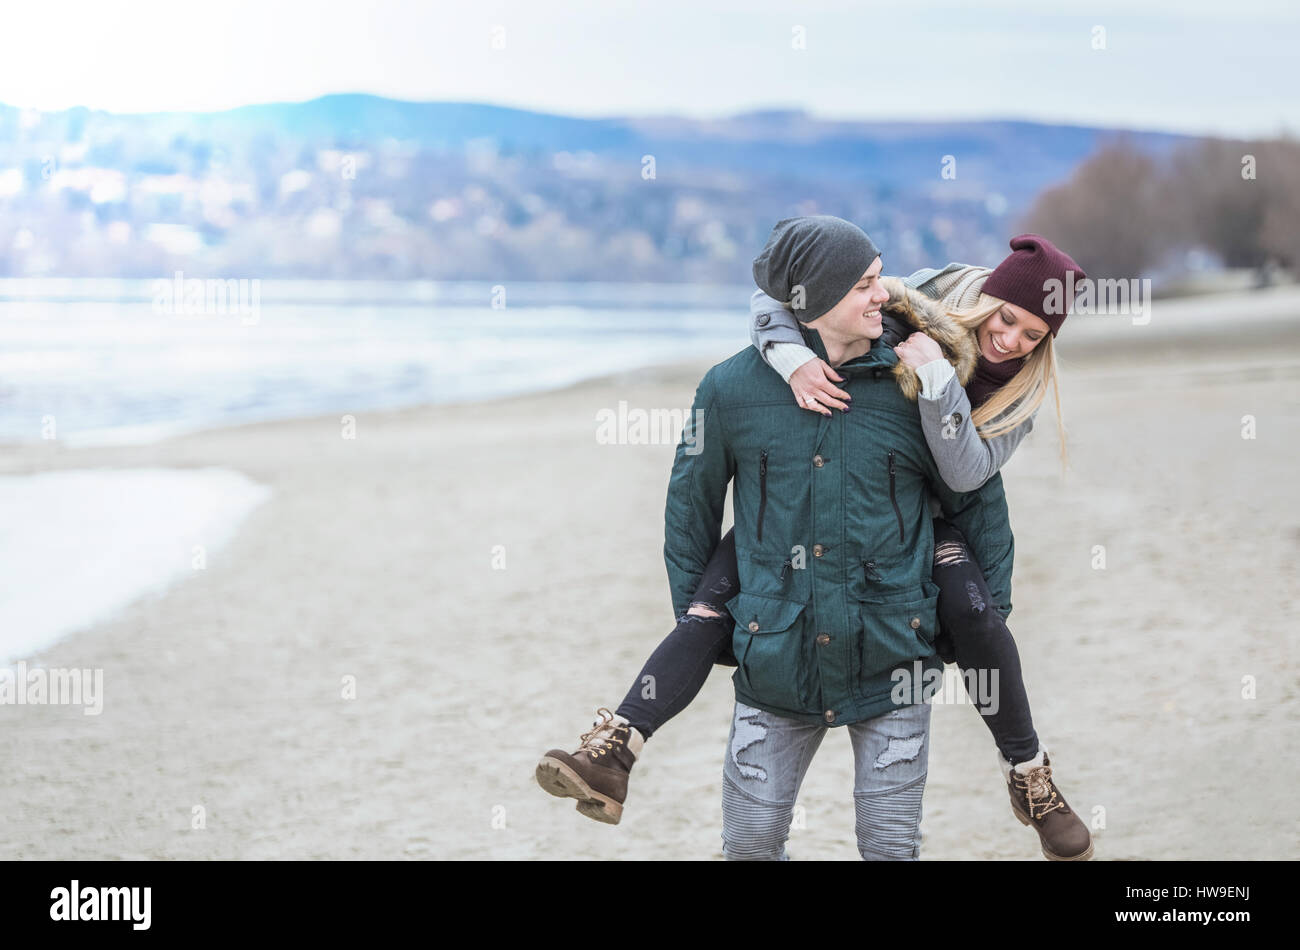 Piggyback ride! - Stock Image